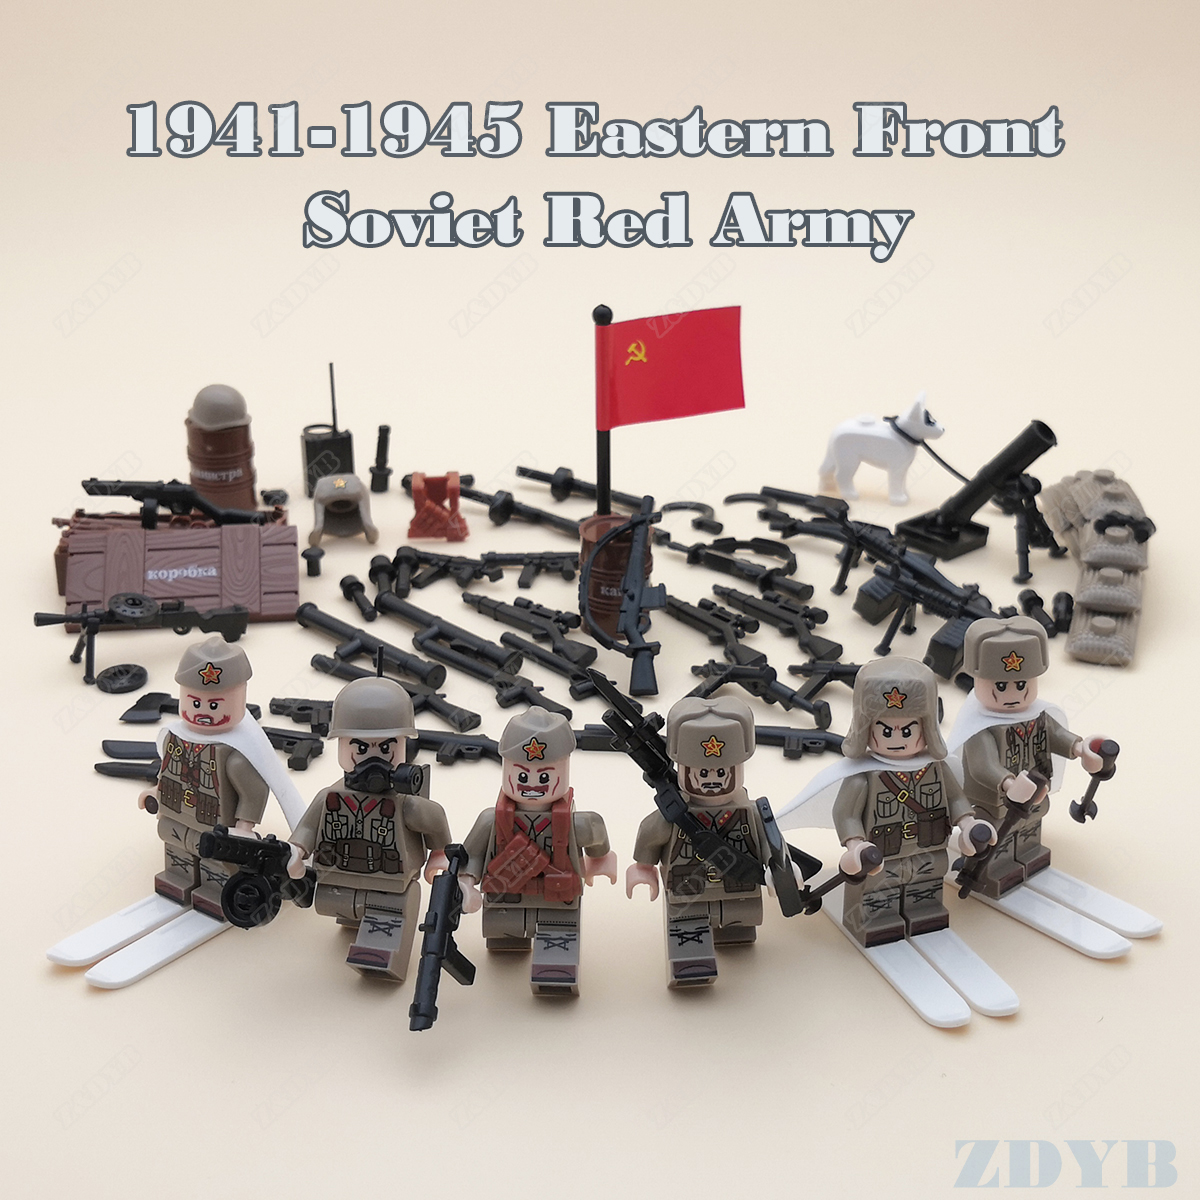 WW2 Russia Soviet Red Army Eastern Front Mini Soldier Force Military Figure Locking Weapon Gun Building Block Brick Children Toy